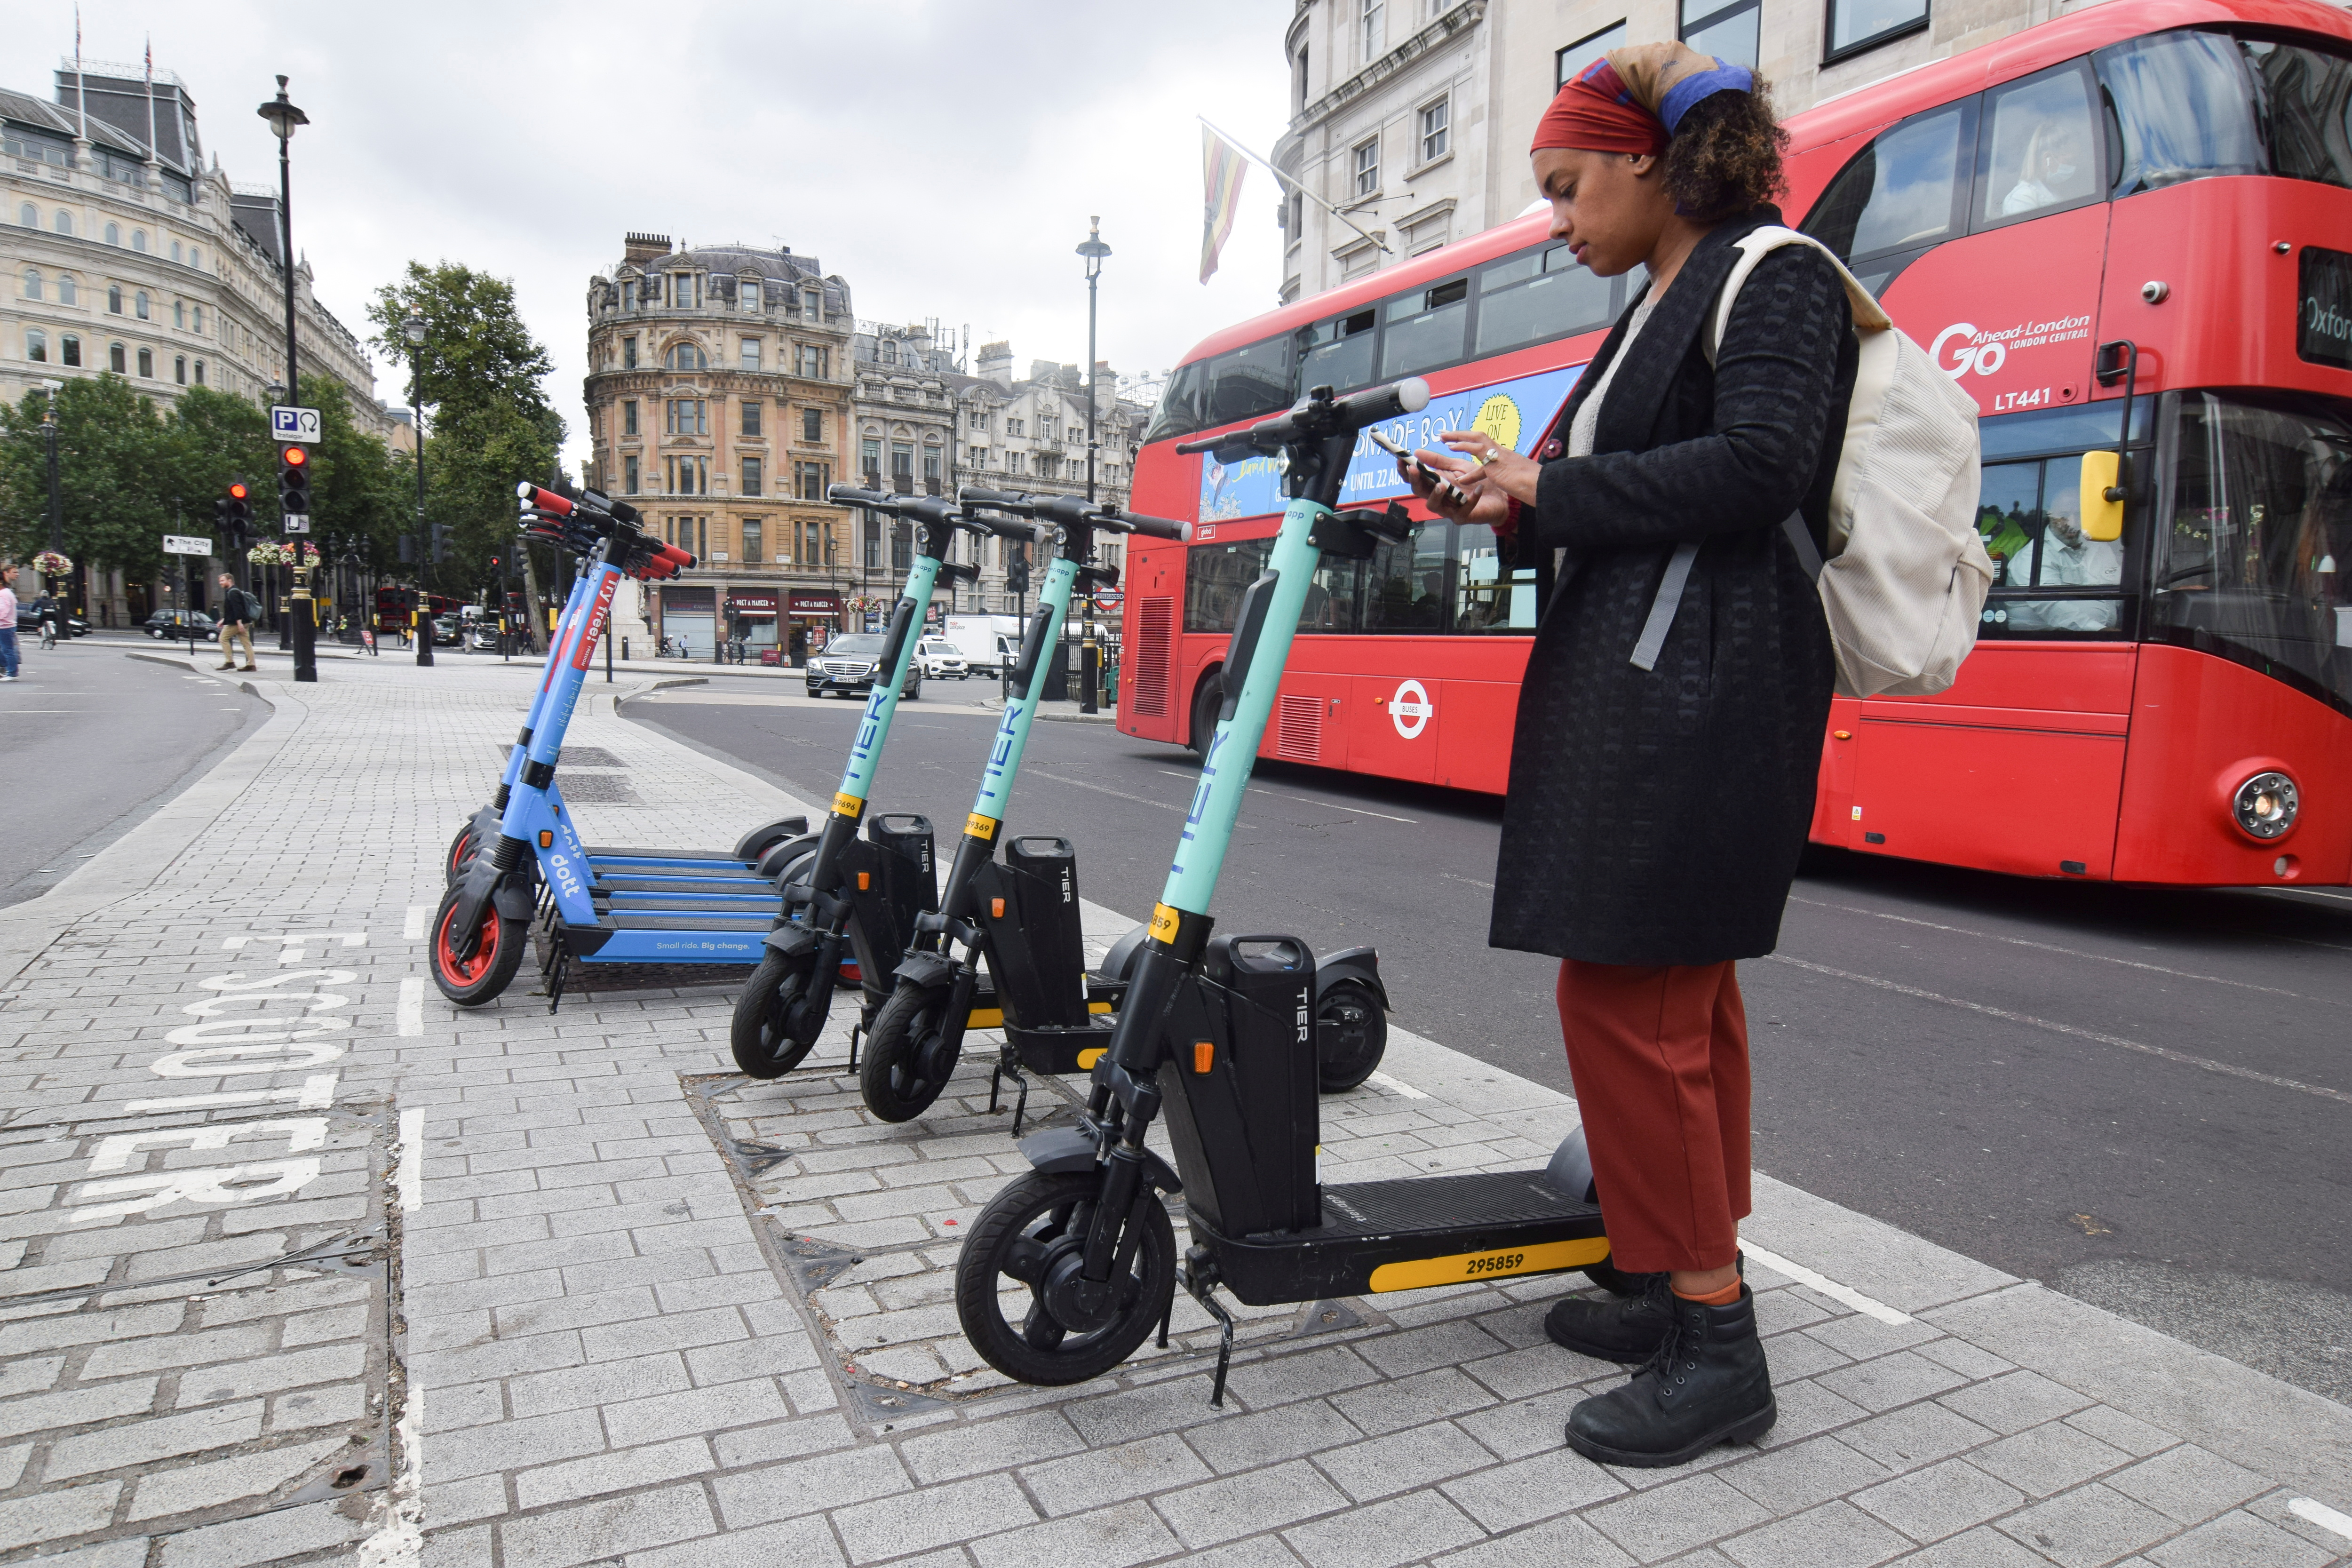 Georgia Yexley, UK and Ireland head of cities at micromobility firm Tier, gets ready to demonstrate an e-scooter in London, Britain, August 25, 2021. Picture taken August 25, 2021. REUTERS/Nick Carey